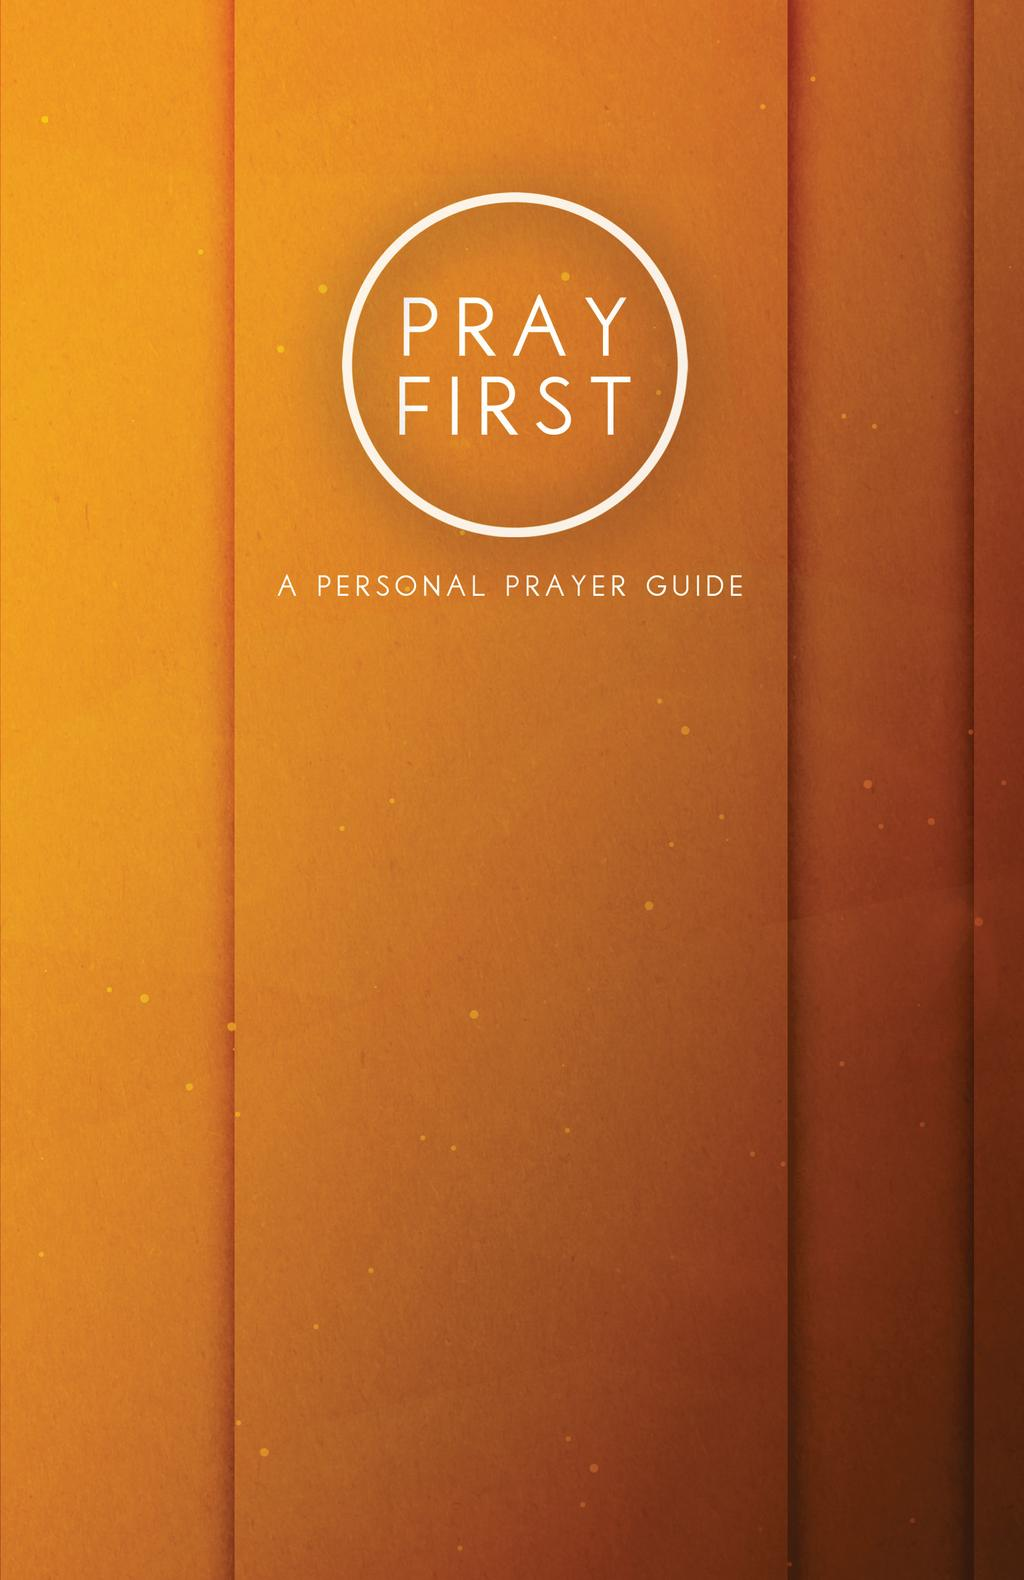 Please enjoy this simple, yet outstanding prayer guide to help you draw closer to God, establish a